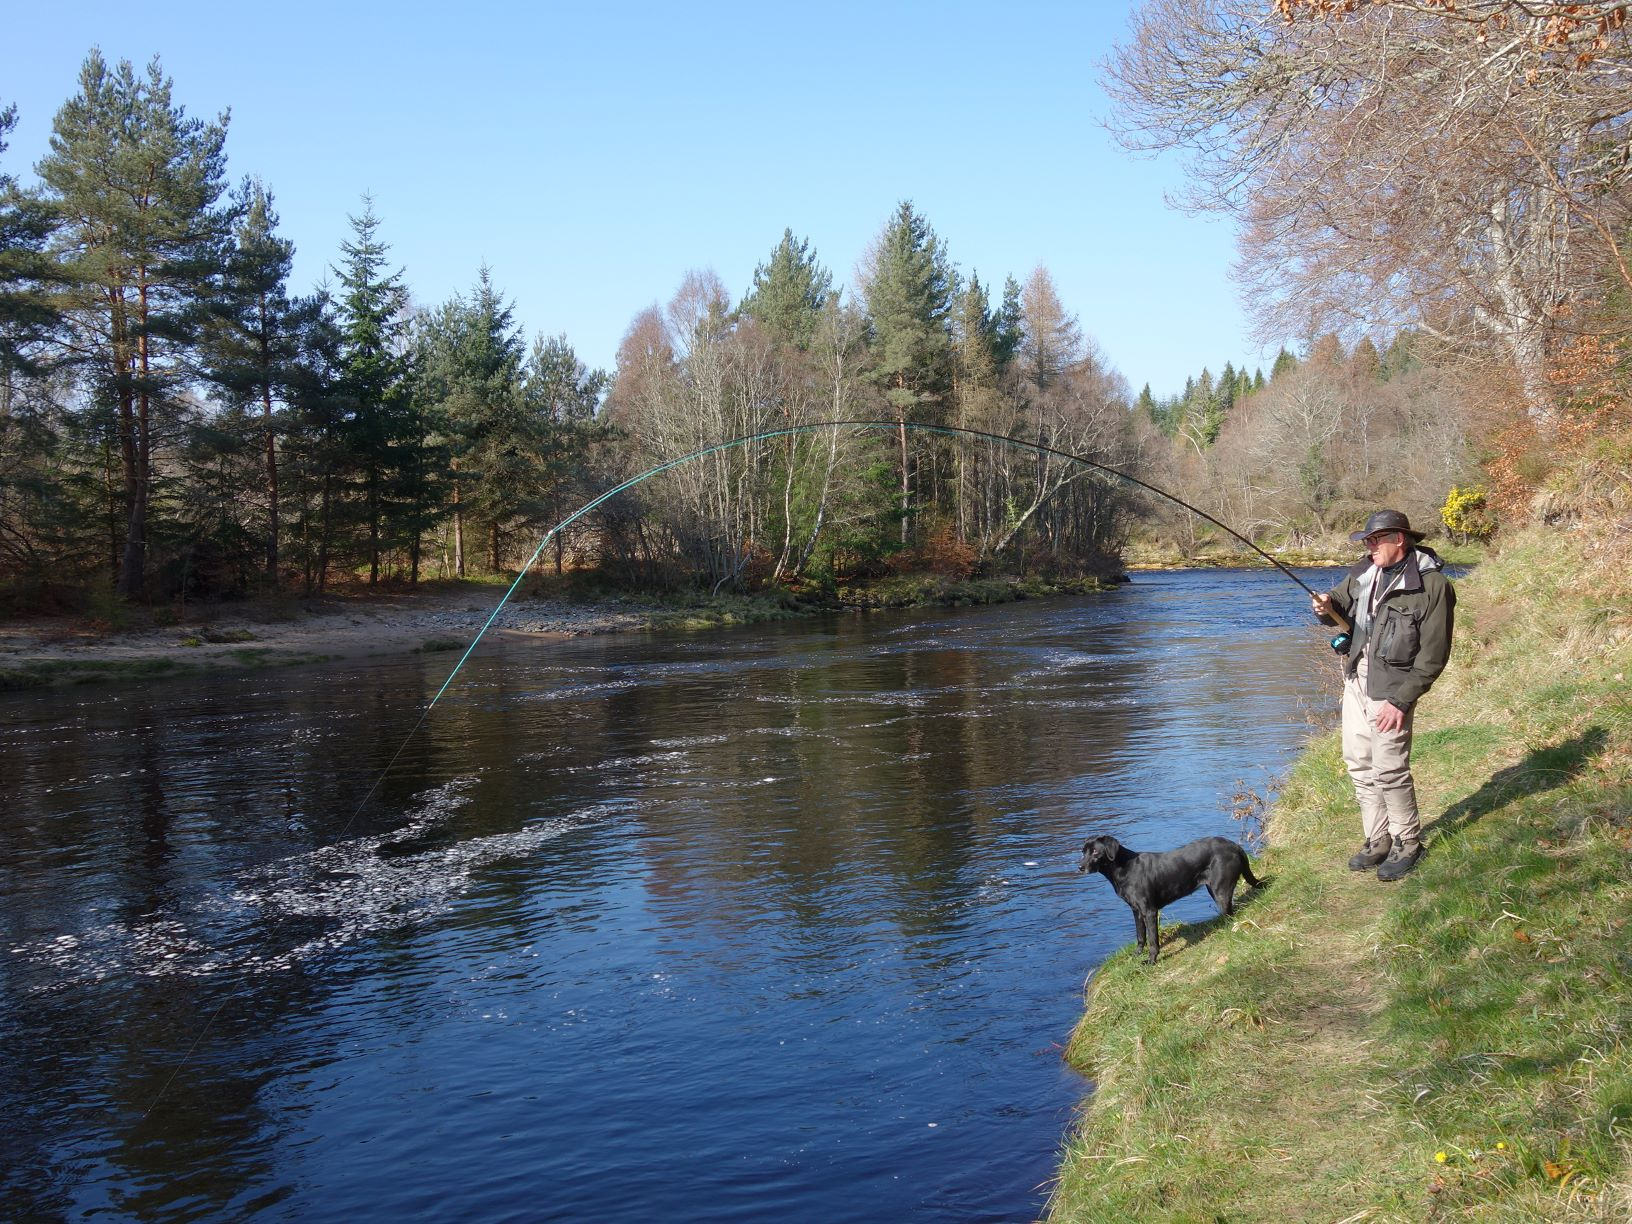 John Butcher hooks a big fish in Palamore Island Pool on Meads of St. John Beat, Darnaway, River Findhorn